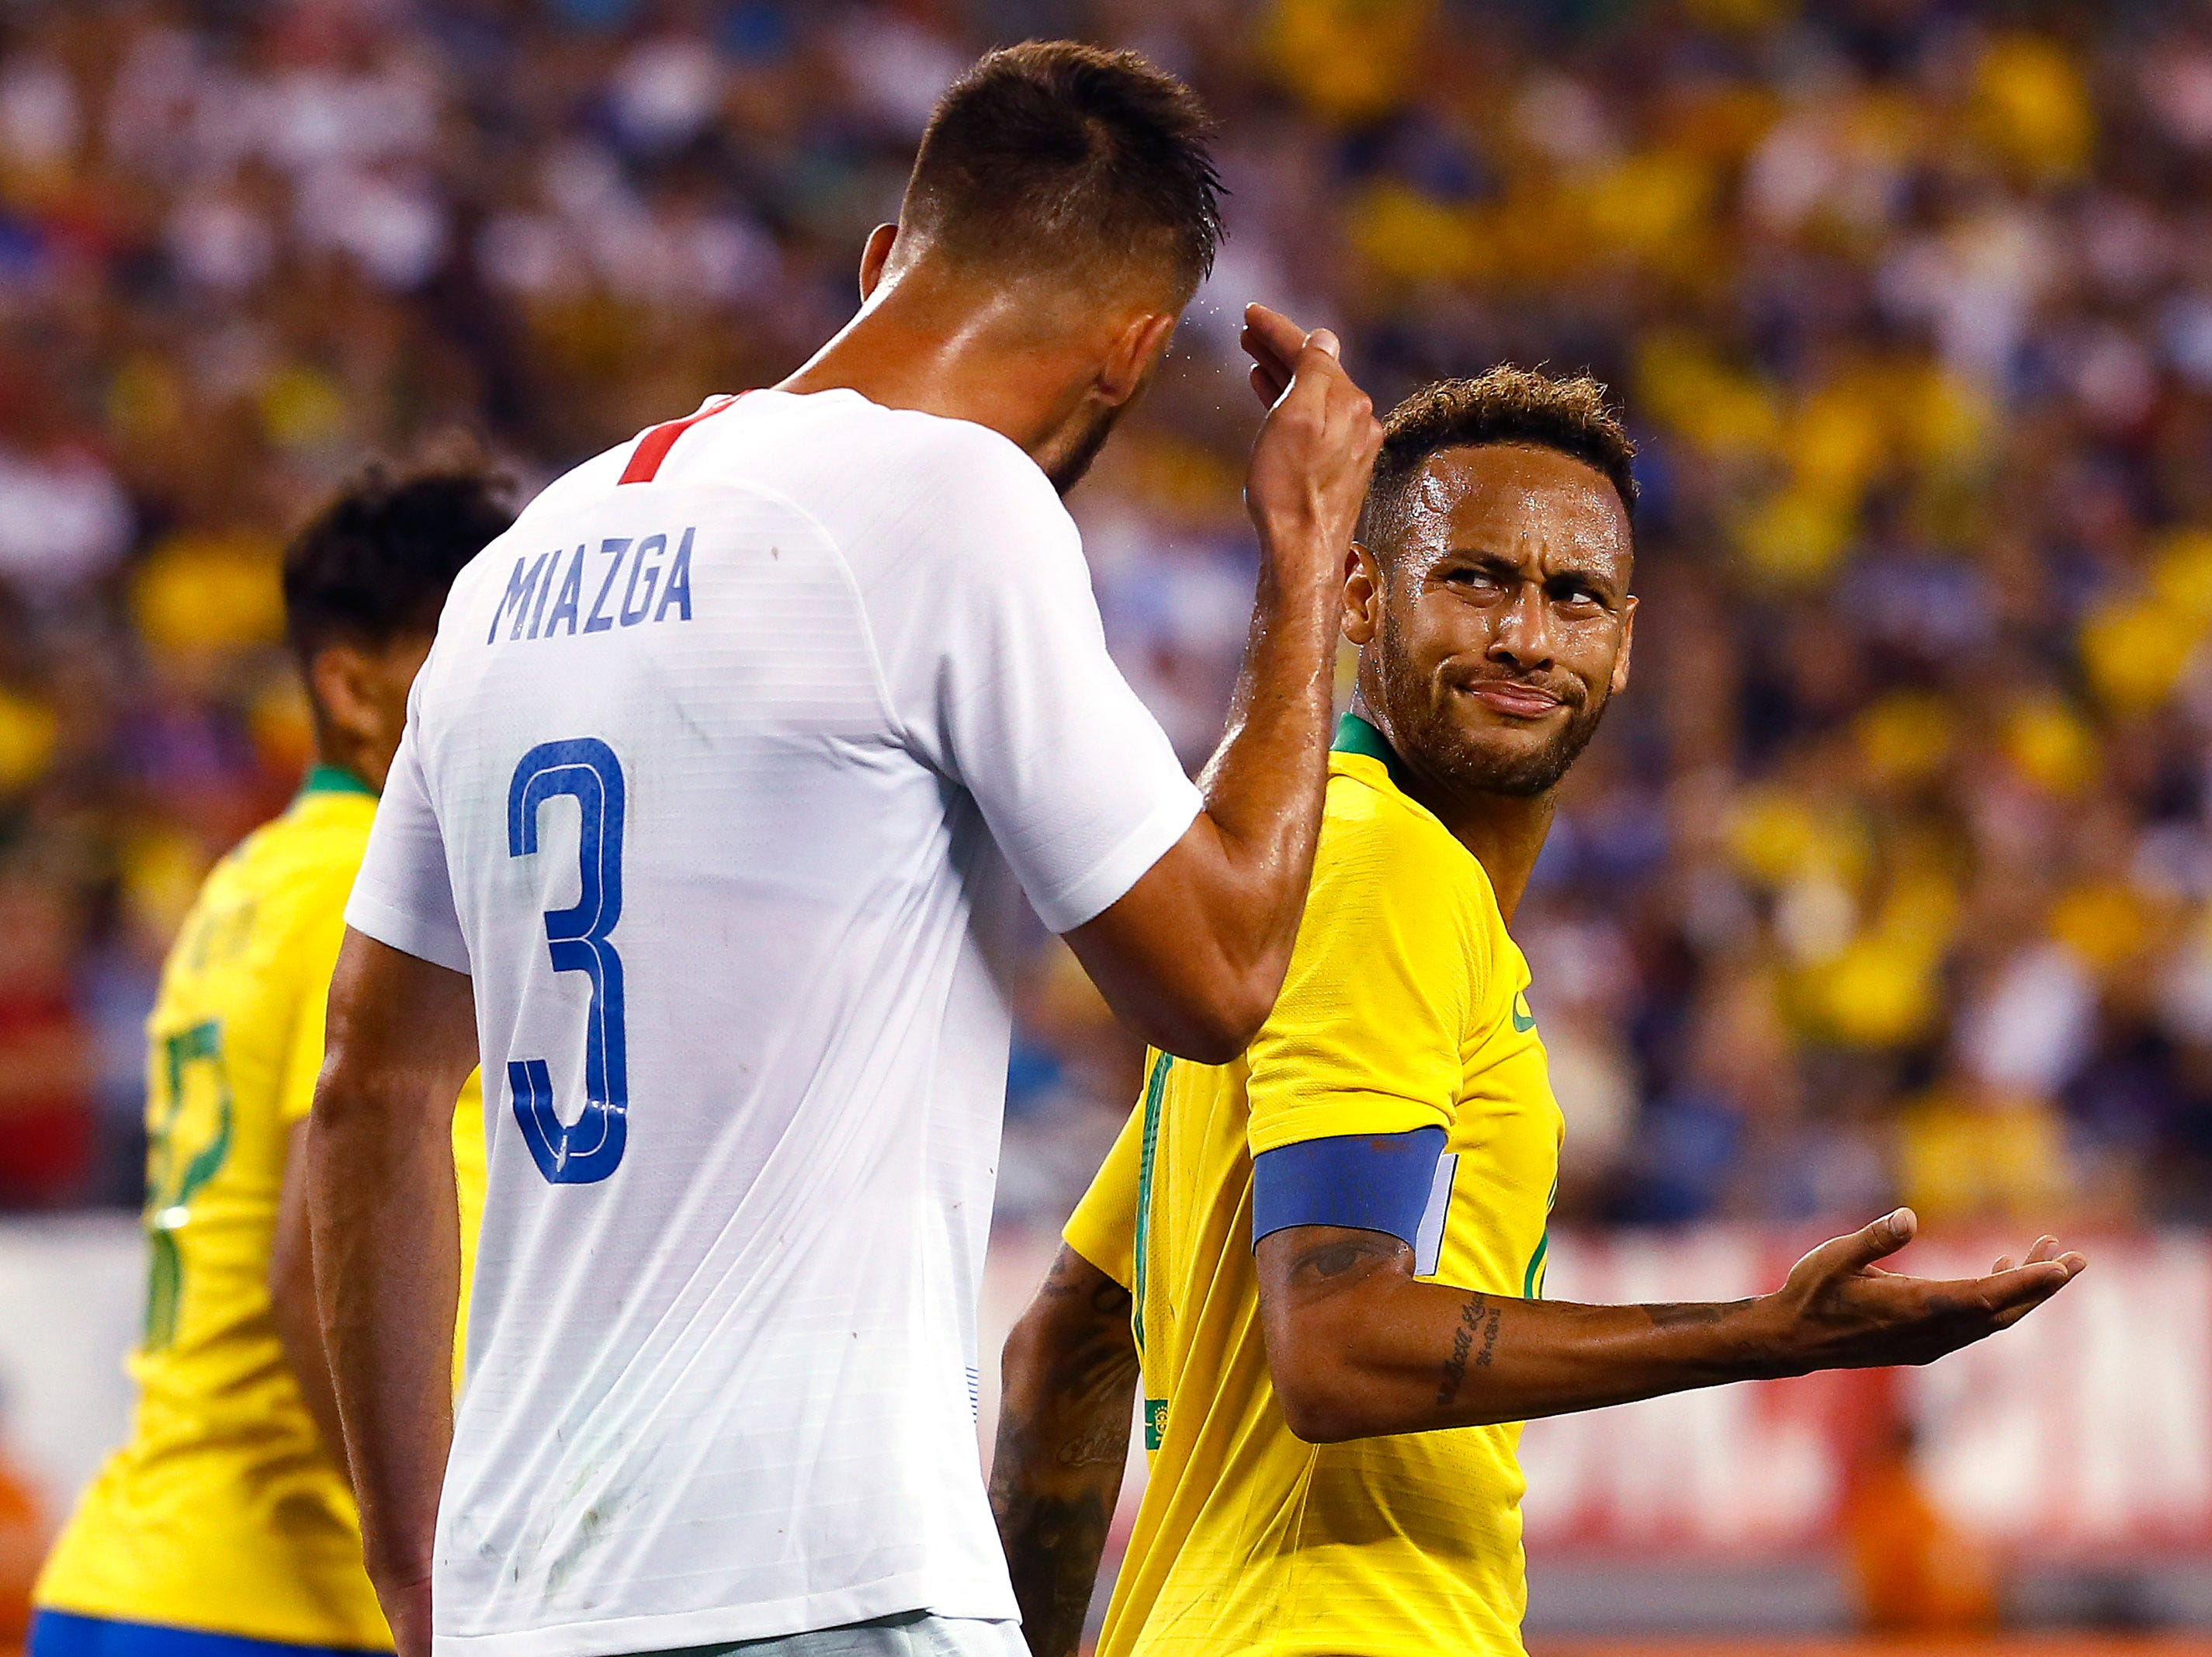 Brazilian and French club Paris Saint-Germain star Neymar has words with U.S. Men's National Team's Matt Miazga of Clifton, NJ in an international friendly against Brazil at MetLife Stadium in East Rutherford, N.J. The US was defeated 2-0 by the five-time World Cup champions. September 7, 2018, East Rutherford, NJ